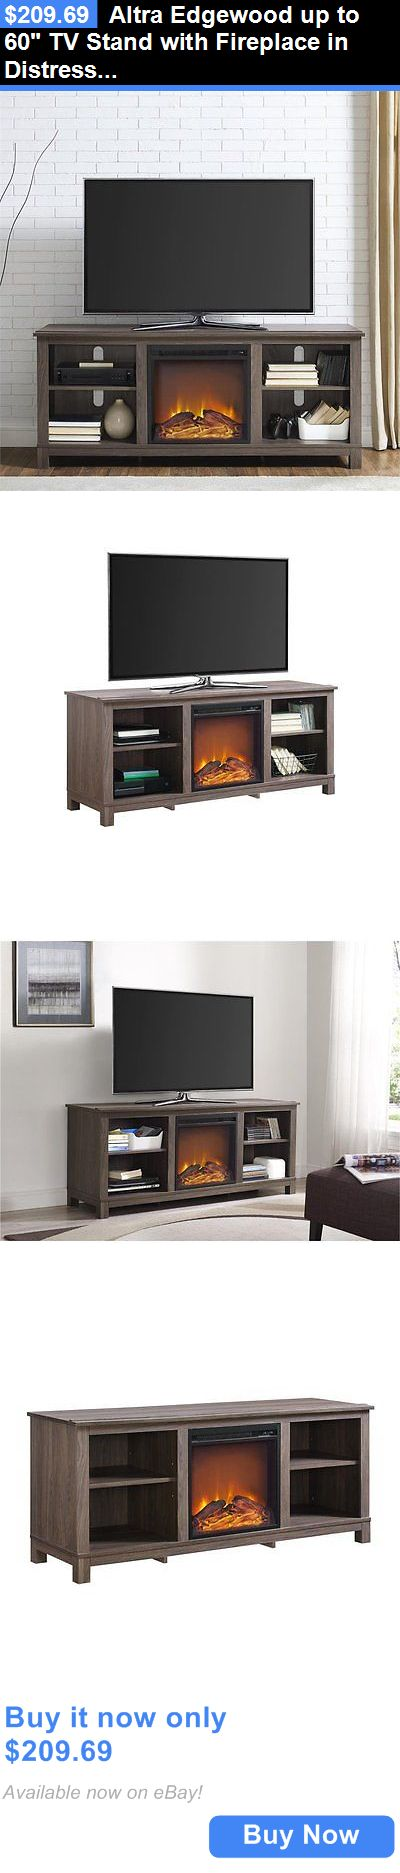 Entertainment Units TV Stands: Altra Edgewood Up To 60 Tv Stand With Fireplace In Distressed Brown Oak BUY IT NOW ONLY: $209.69